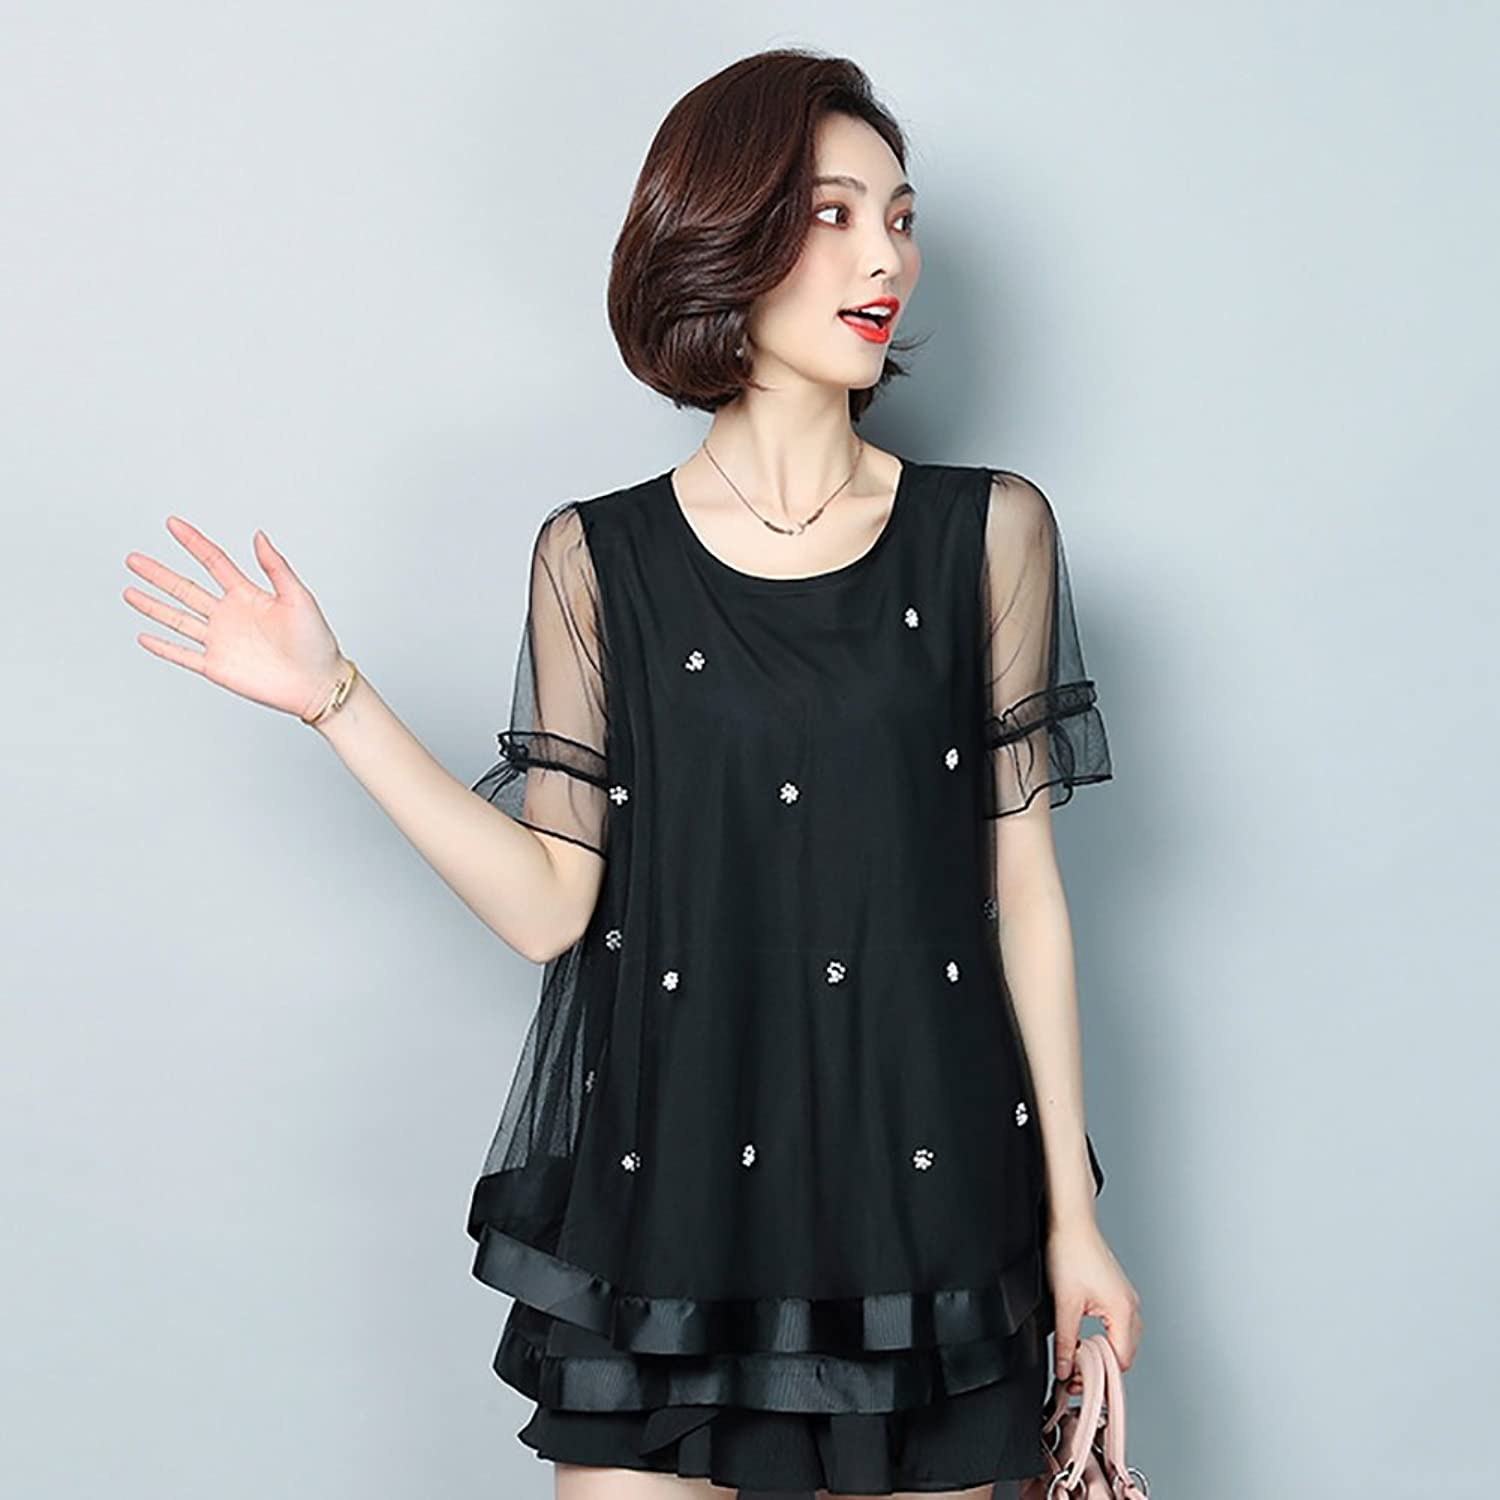 Women Dress 2018 New Loose Doll Clothes Nail Beads Small Shirt Top Mini Party Evening Cocktail Reference Size Table